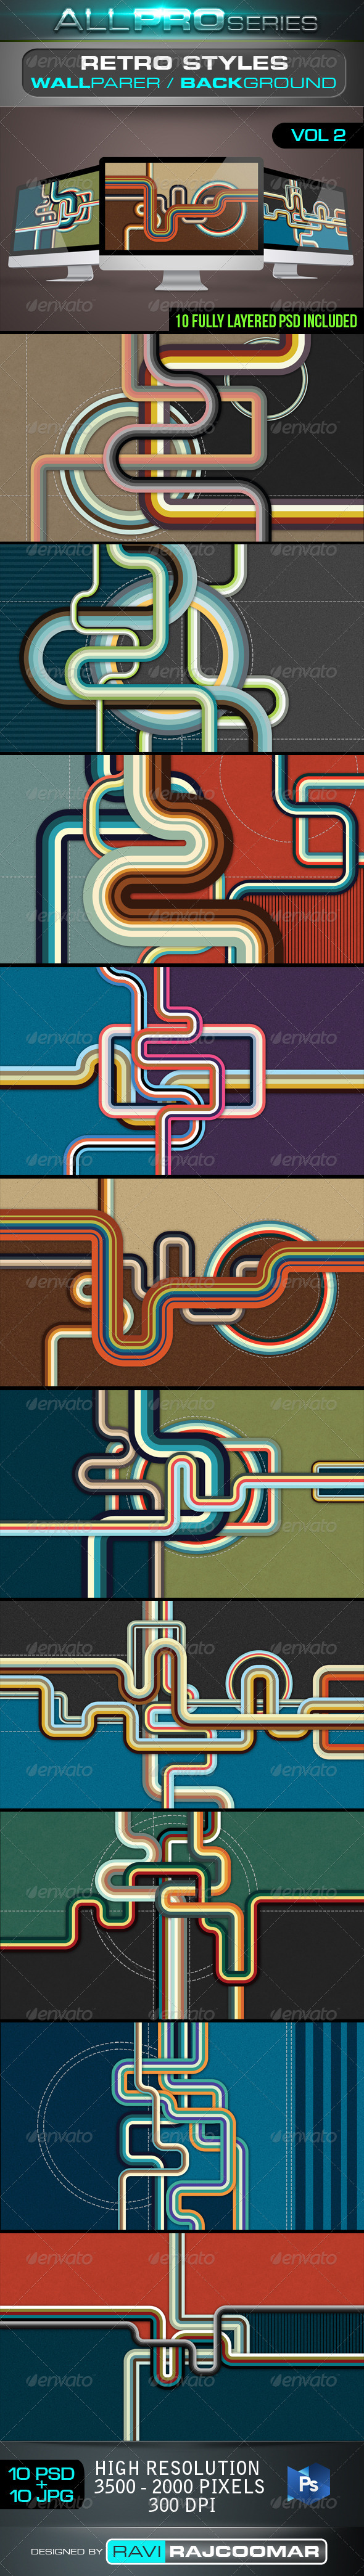 Retro Style Background Vol.2 - Abstract Backgrounds